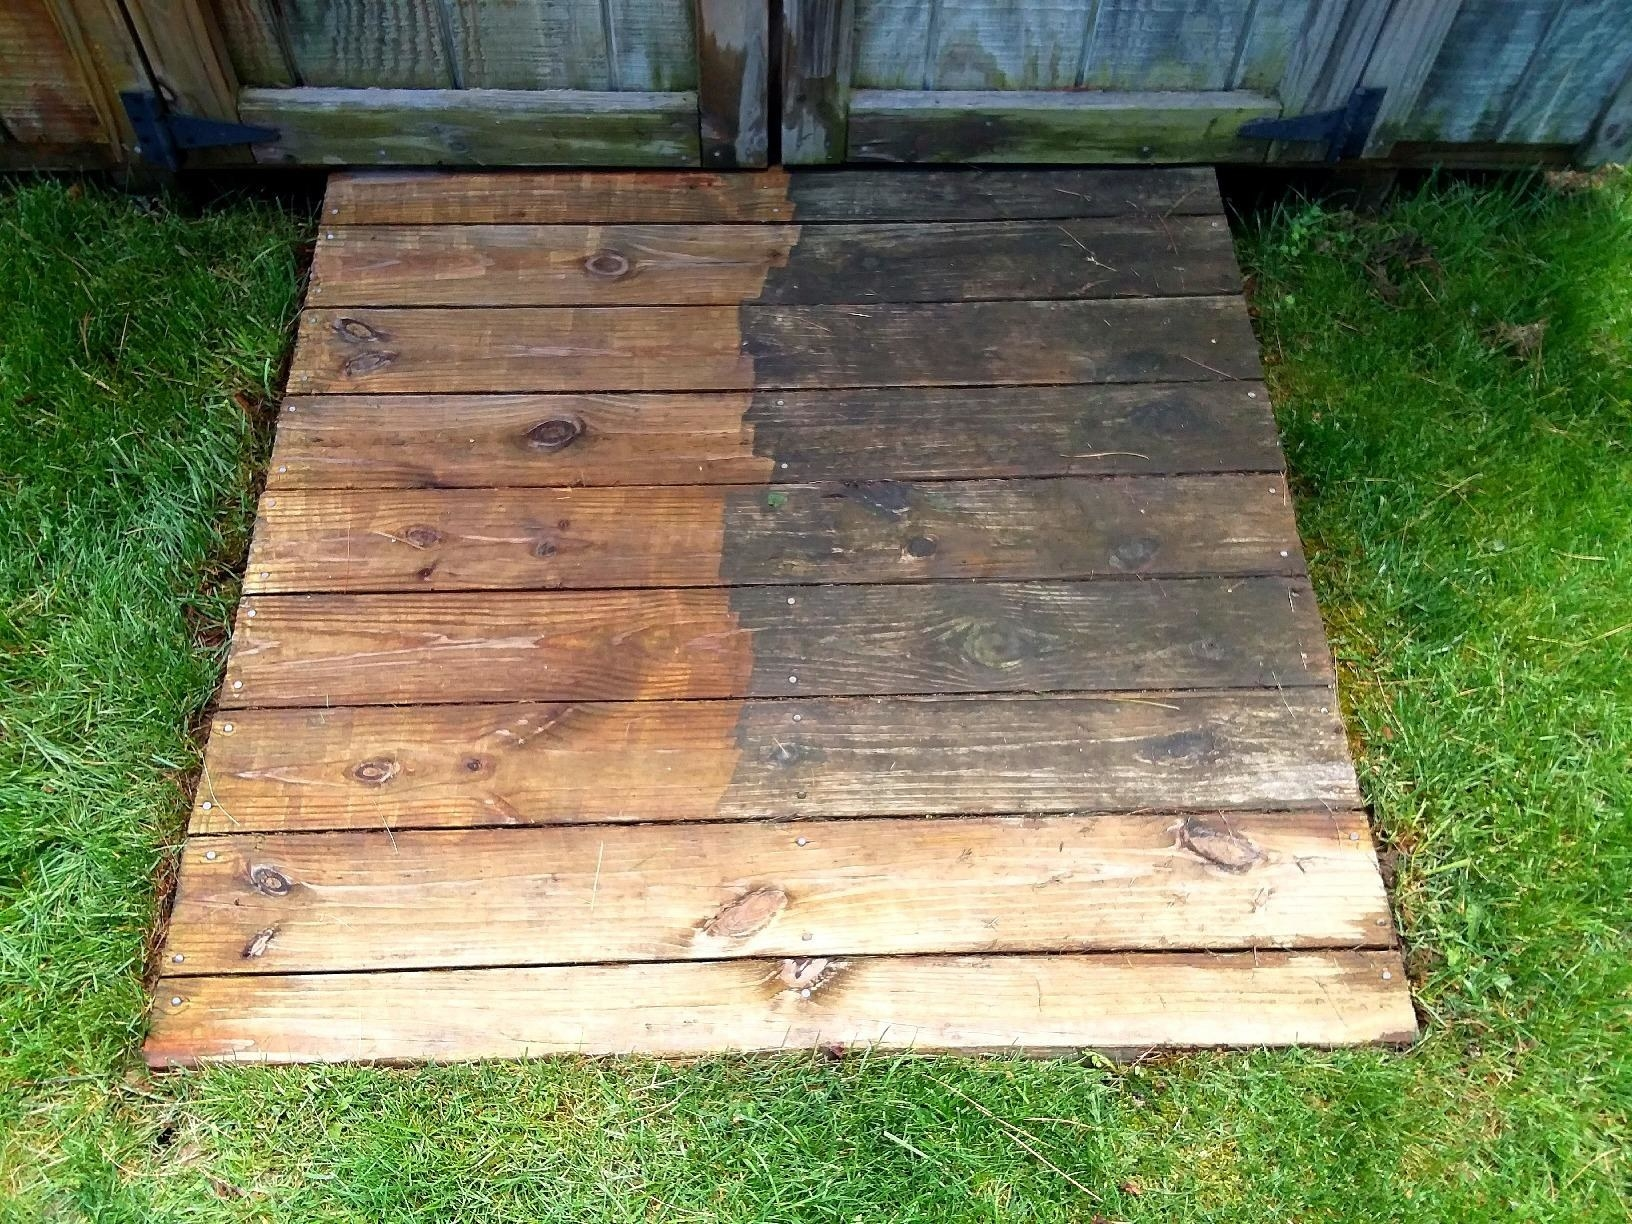 Reviewer photo of wood planks and you can clearly see where it's been cleaned with the pressure washer